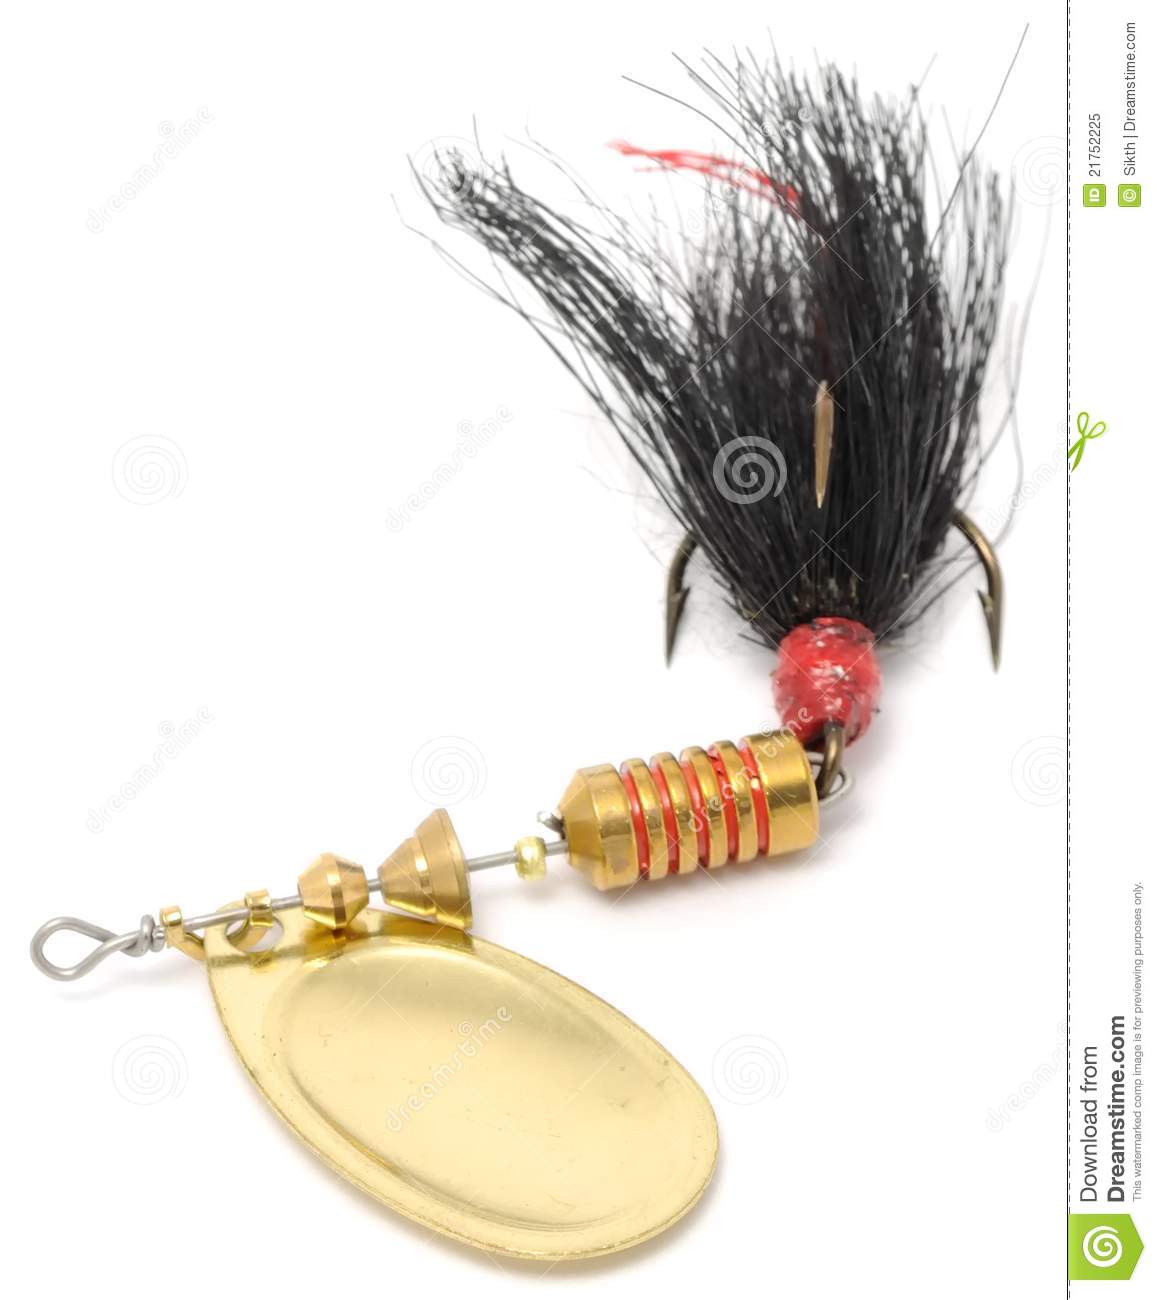 Rooster tail fishing spinner spoon lure stock image for Rooster tail fishing lure